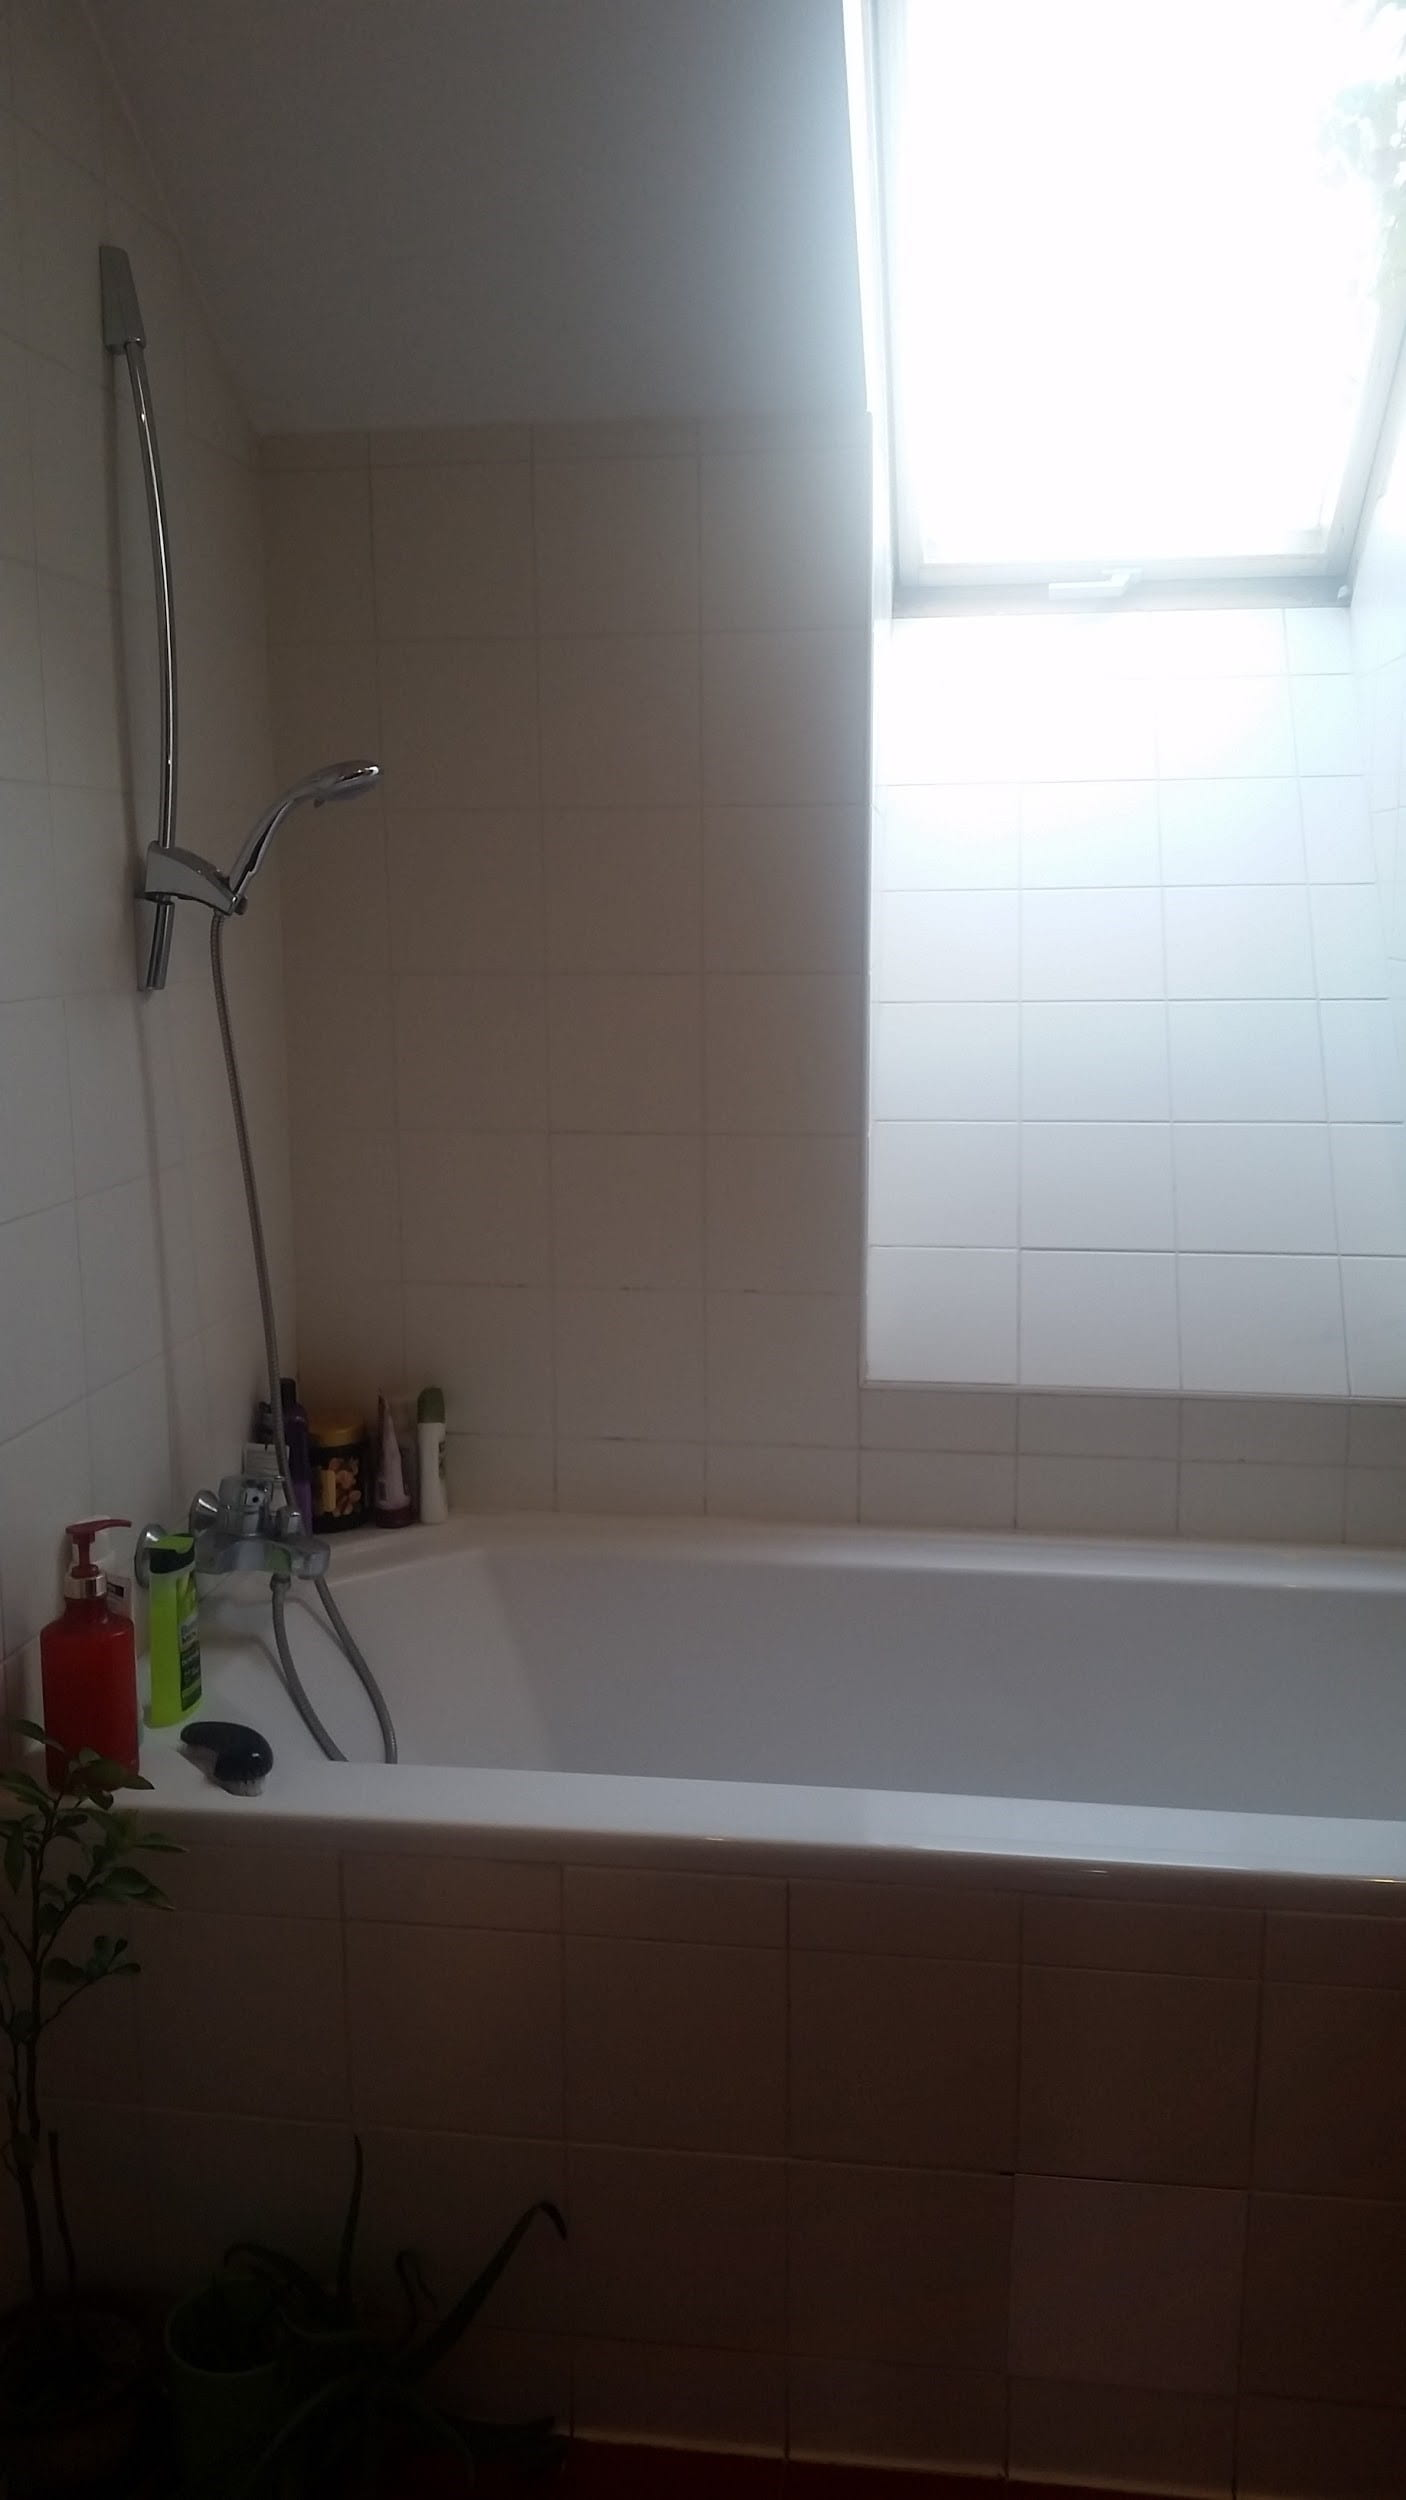 Bathtub with shower head in Czech Republic